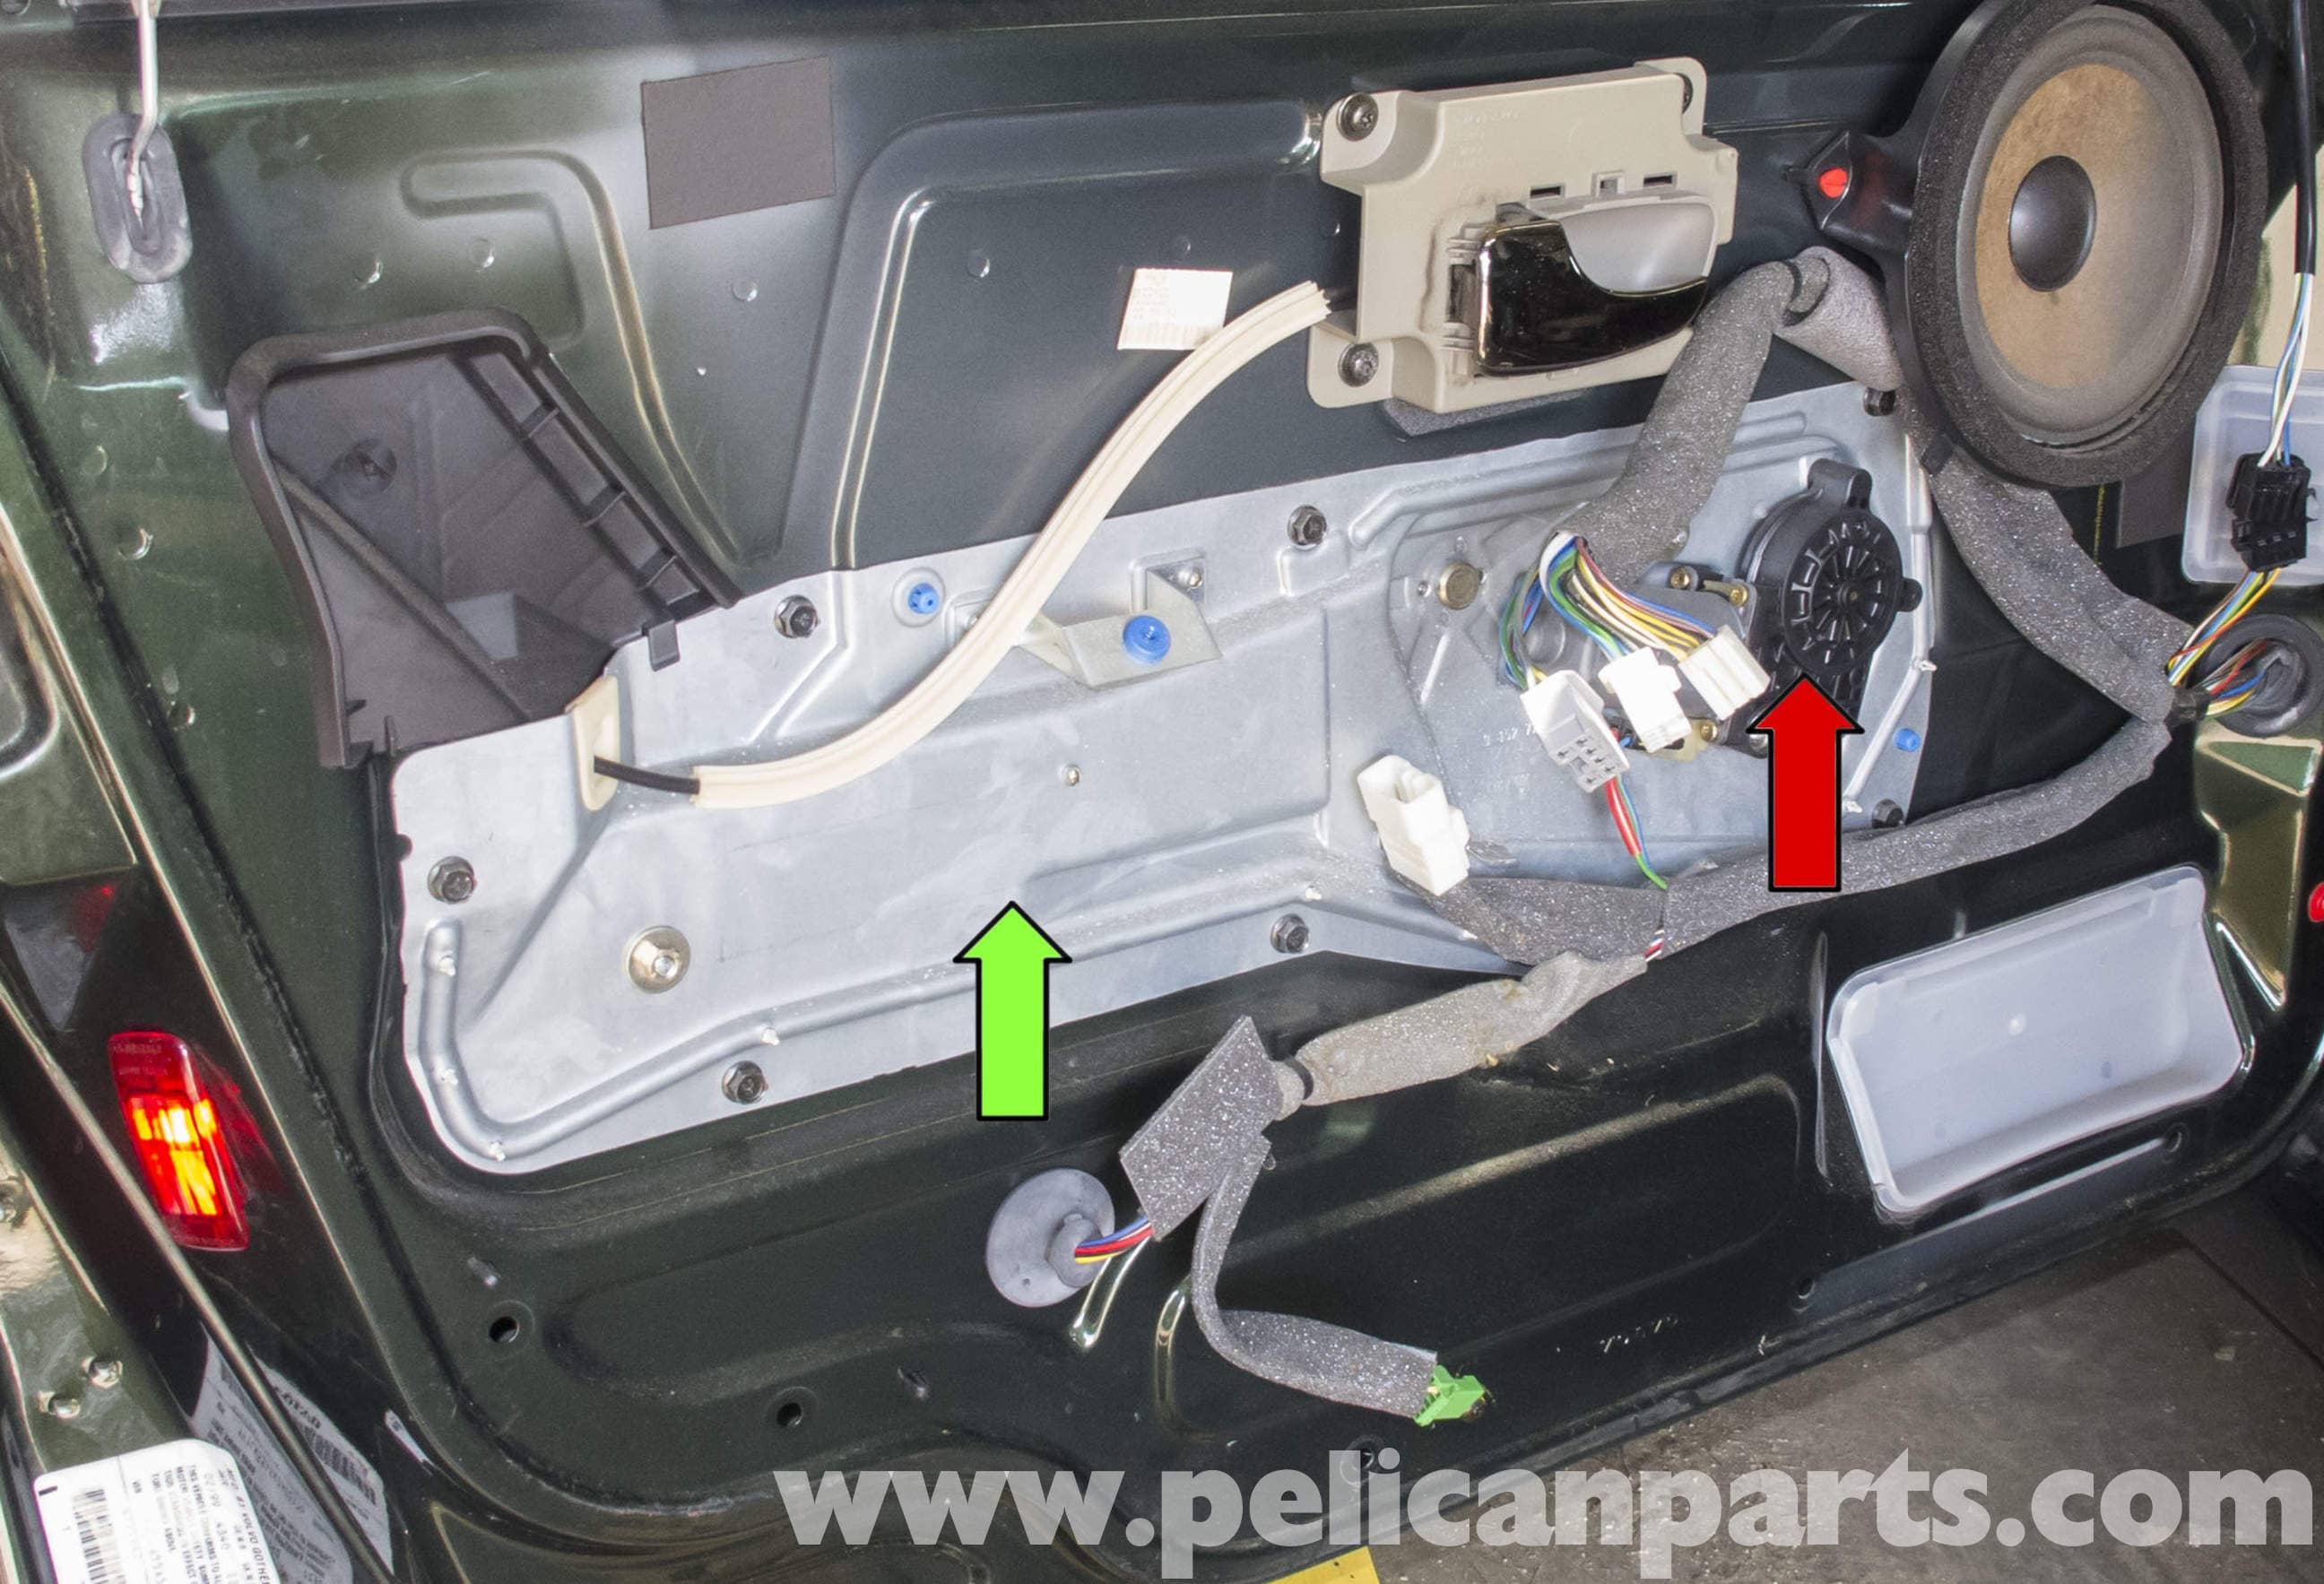 2007 Ford Escape Wiring Diagram Volvo V70 Front Window Regulator Replacement 1998 2007